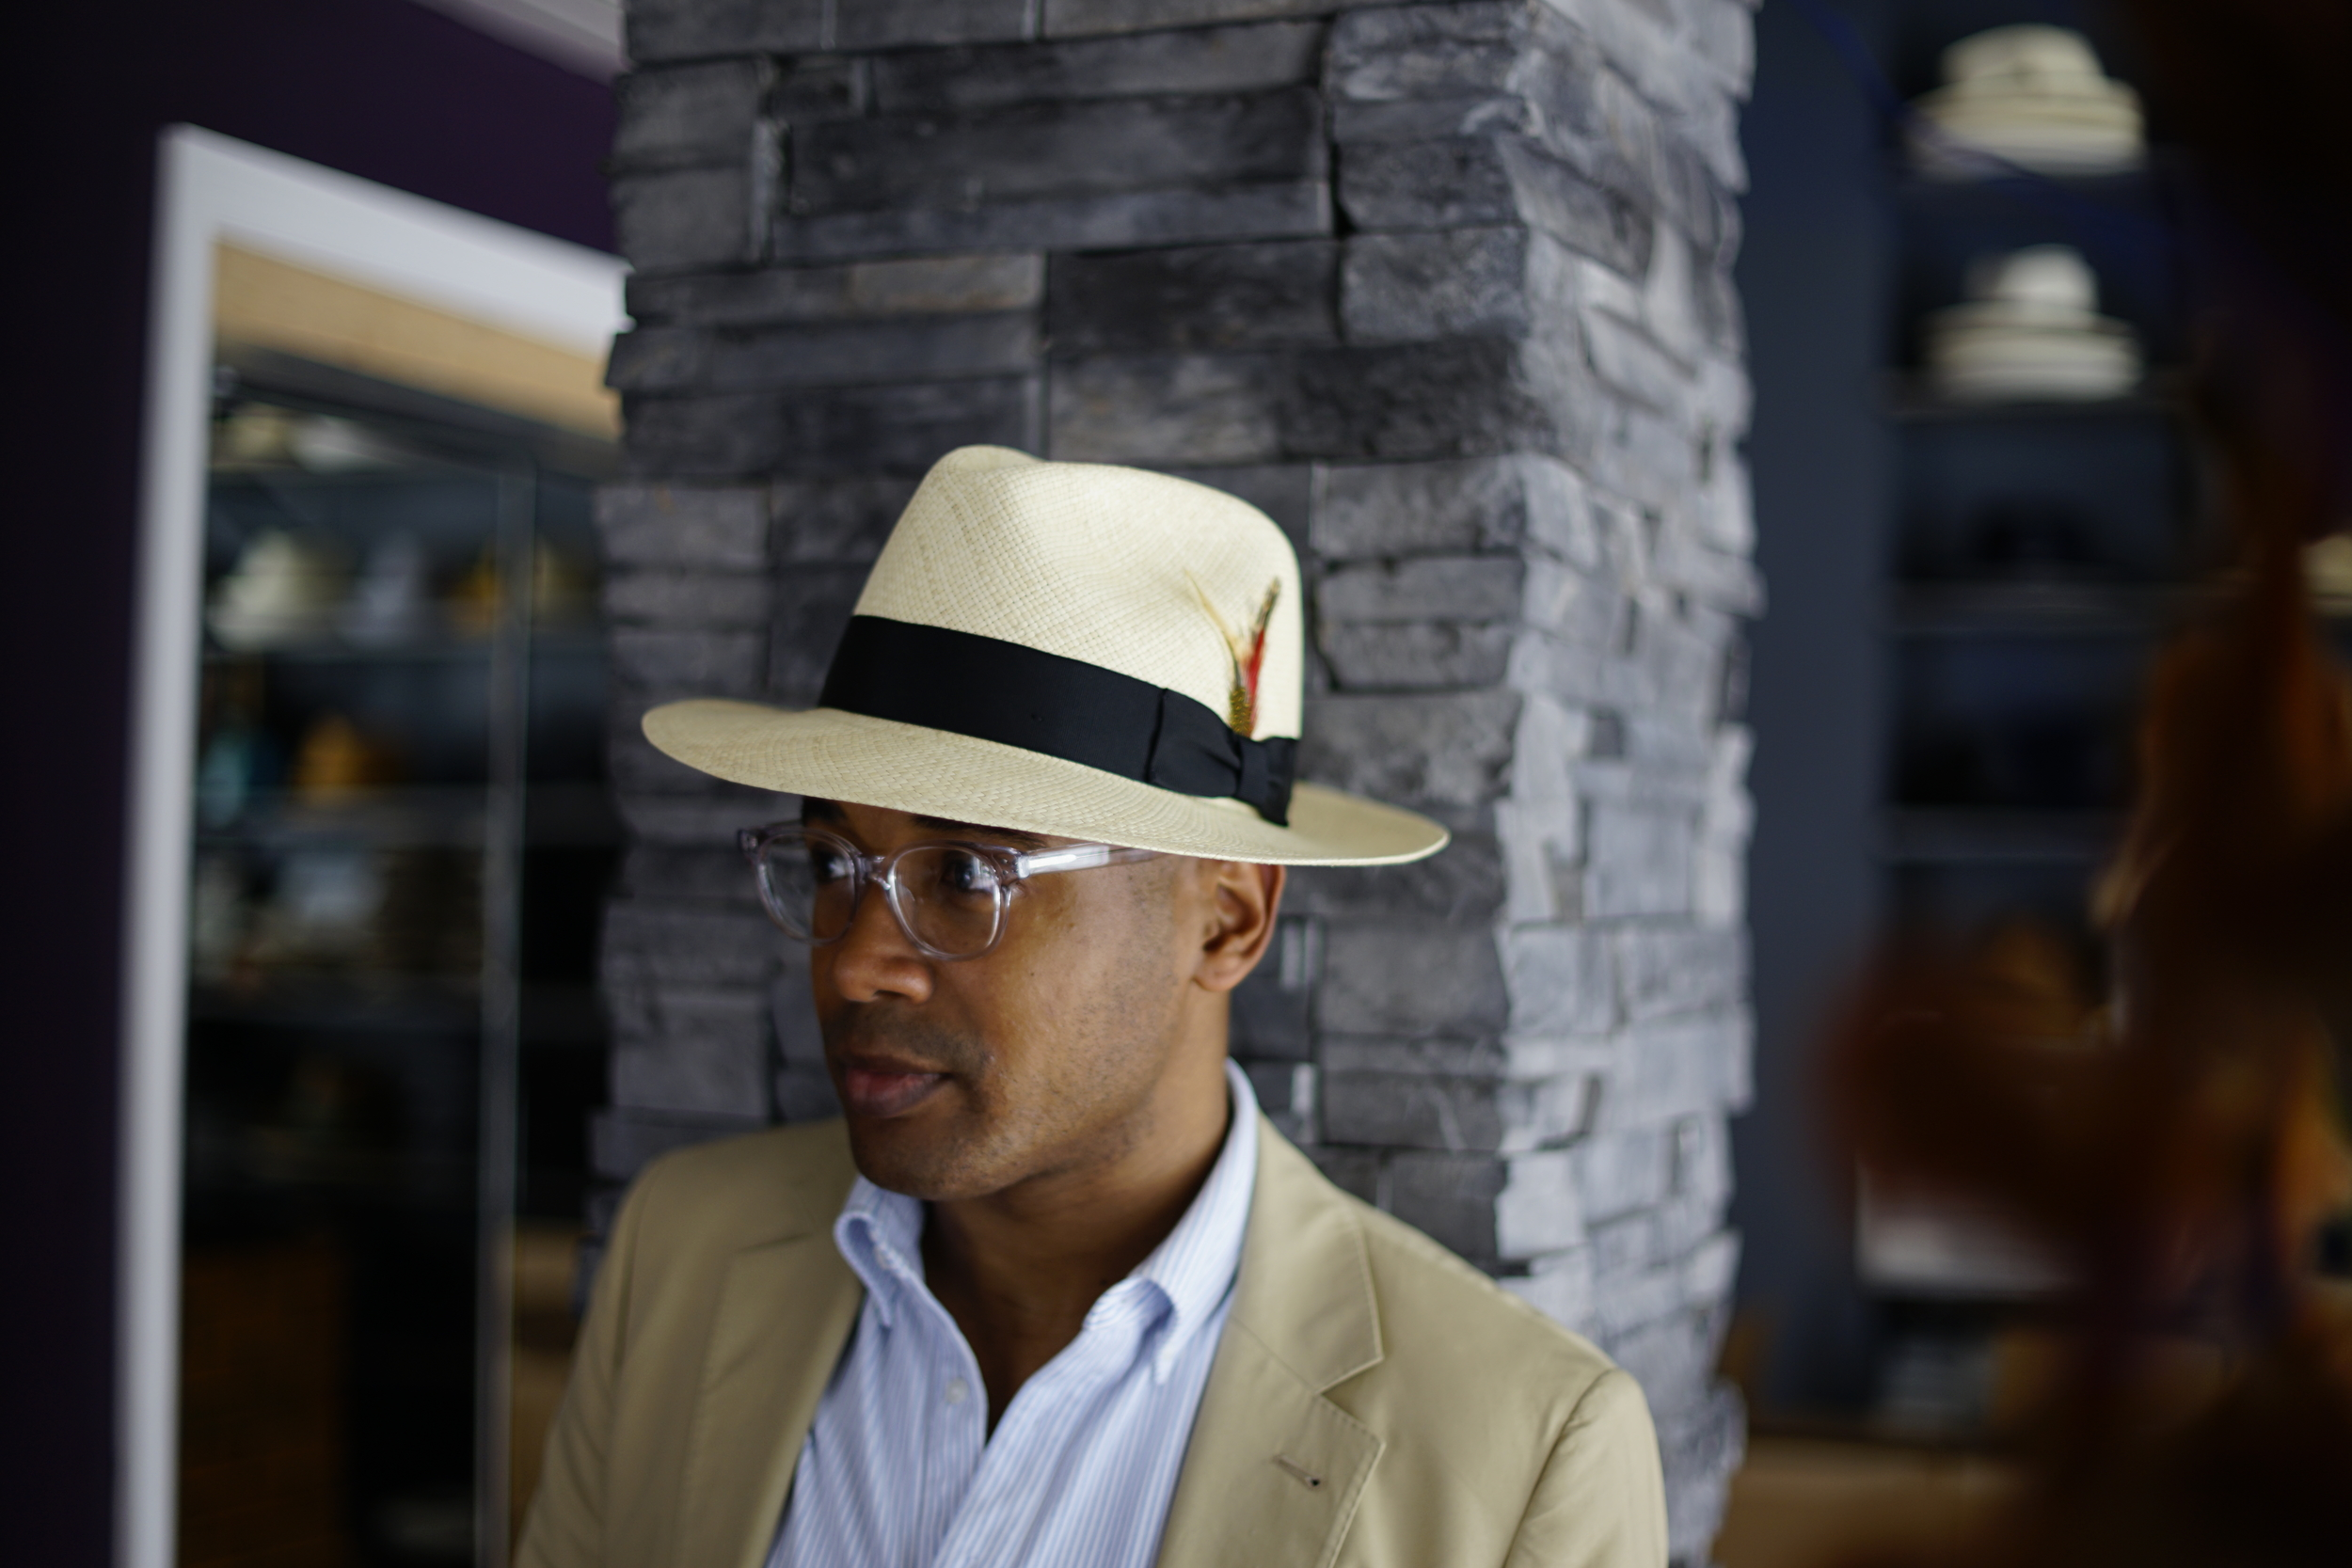 Panama hat by Flamekeepers Hat Club; frames by SEE Eyewear, jacket by Club Monaco, polo shirt by Uniqlo